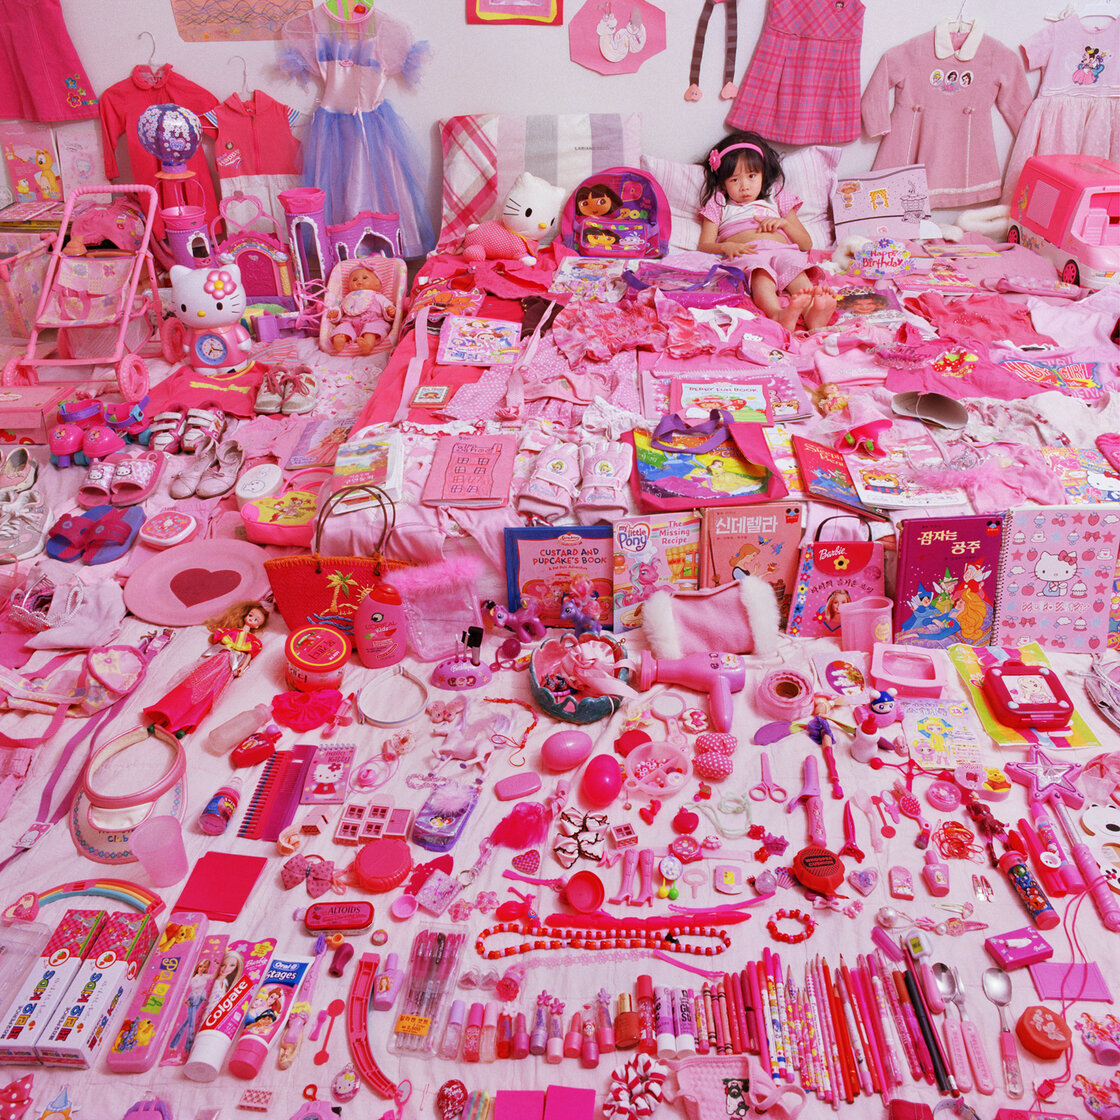 Photographer JeongMee Yoon felt her daughter's life was being overtaken by pink. She illustrated that in her 2006 portrait Seo Woo and Her Pink Things.